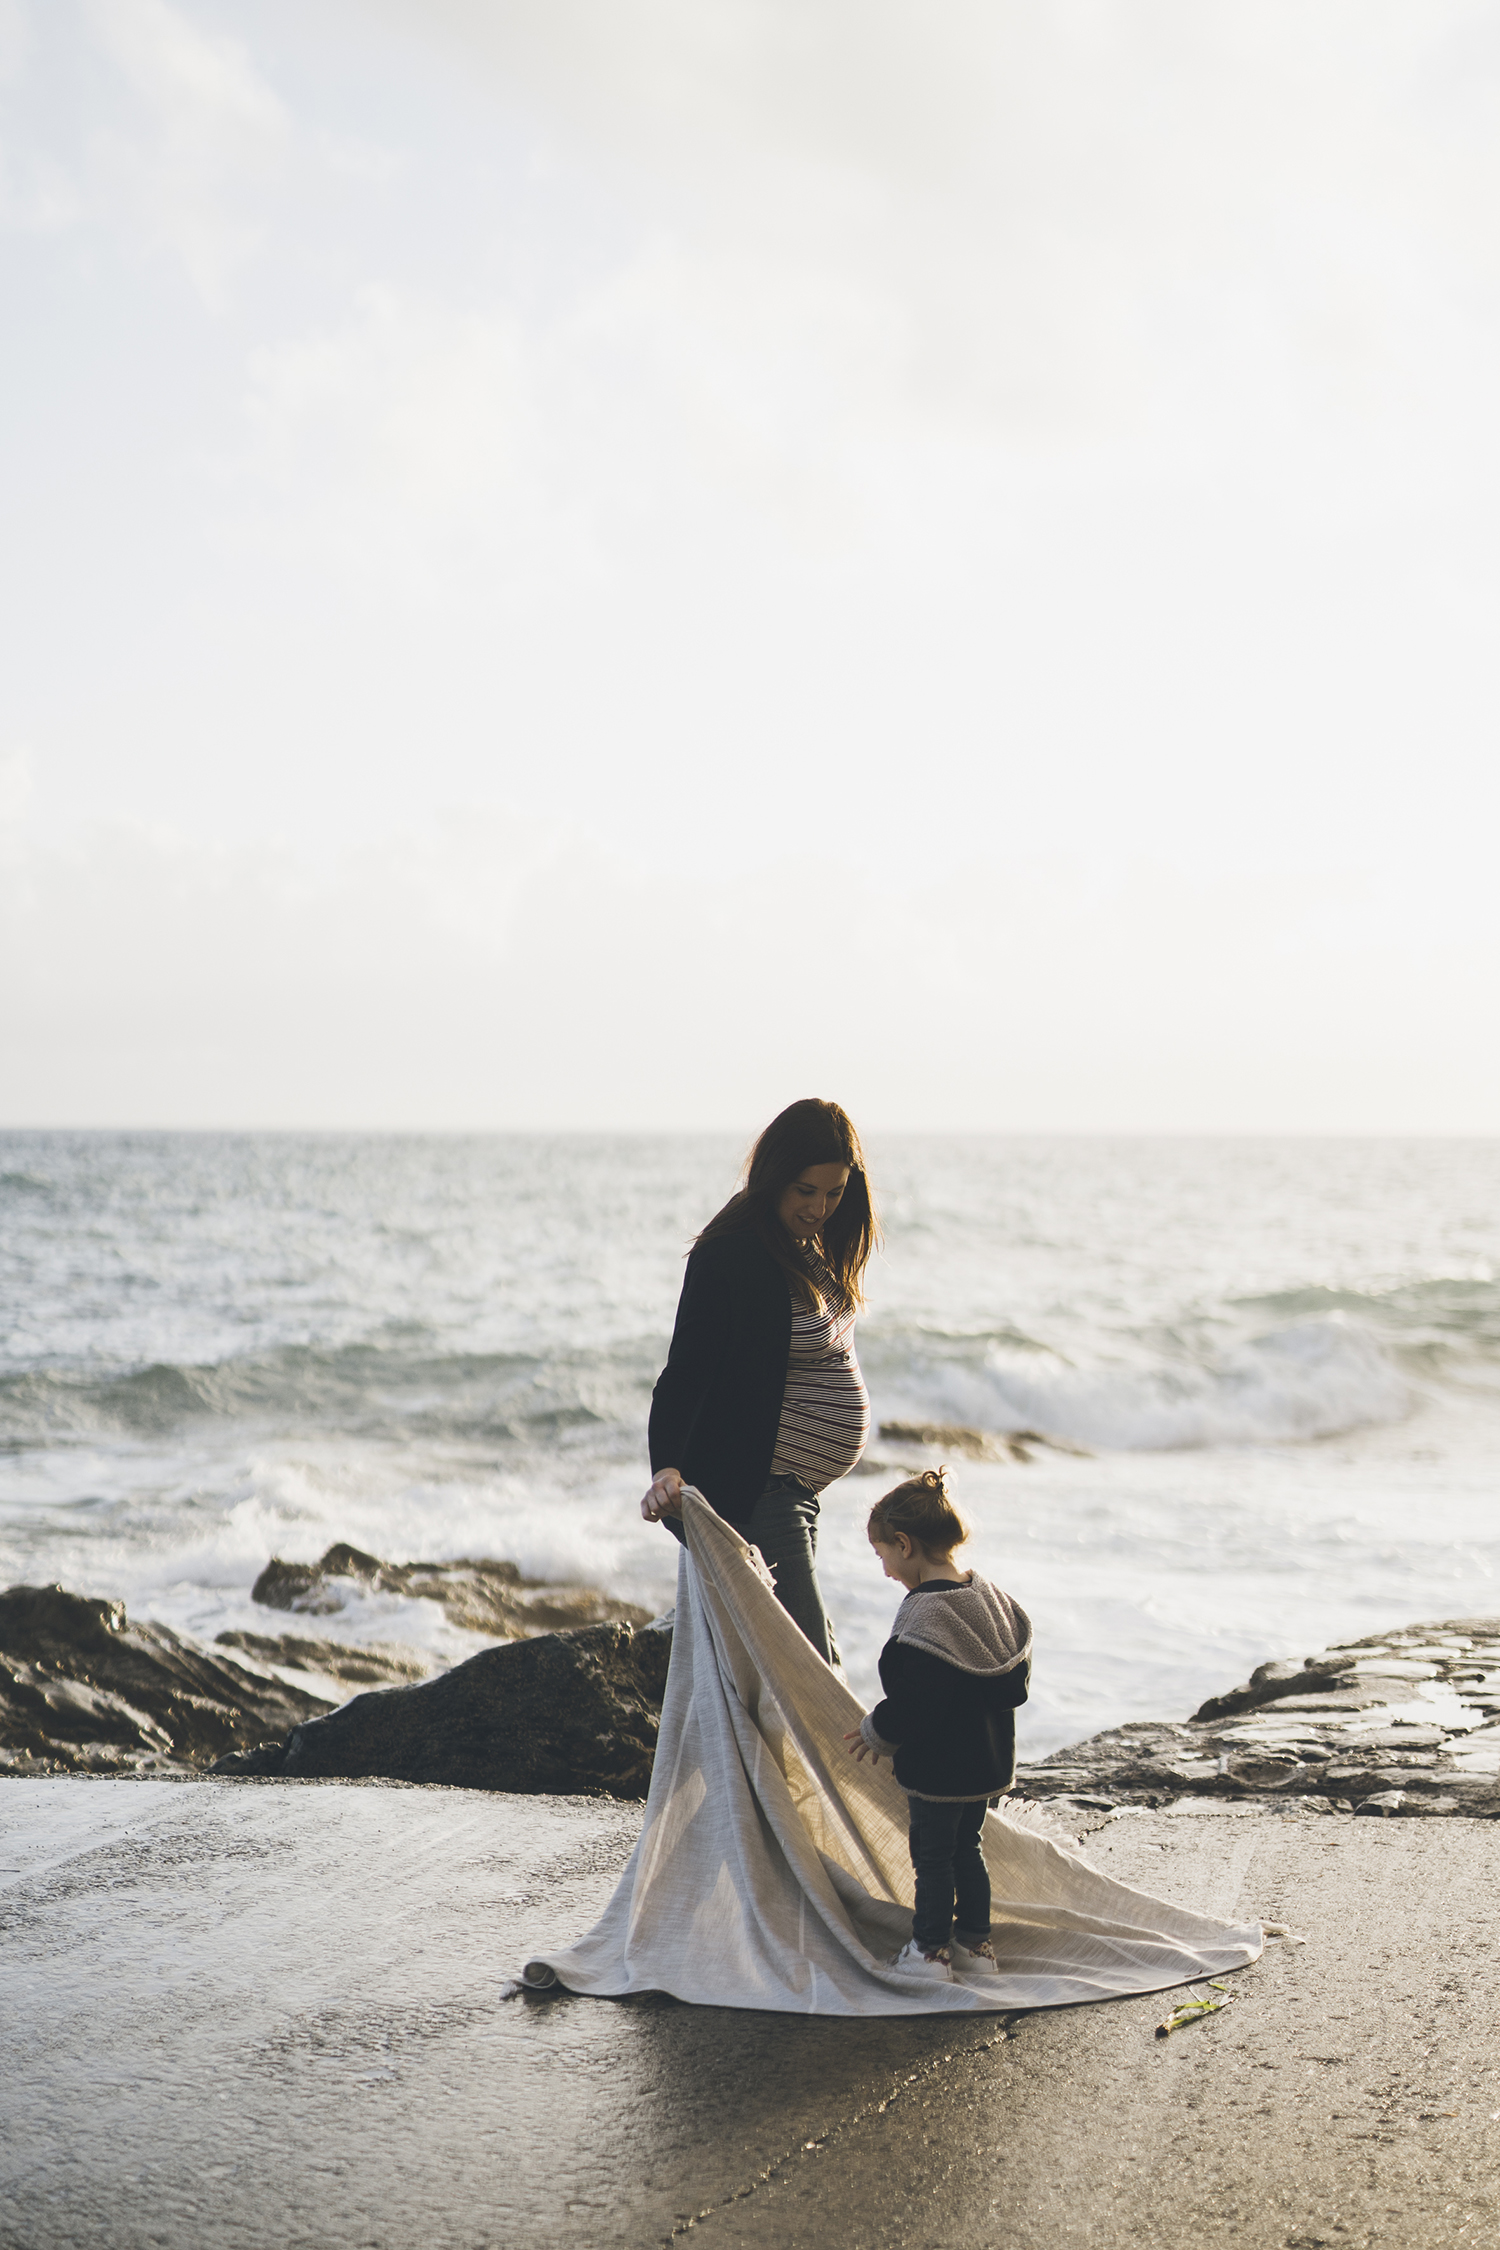 mom and dad playing by the sea. Lifestyle maternity photography.